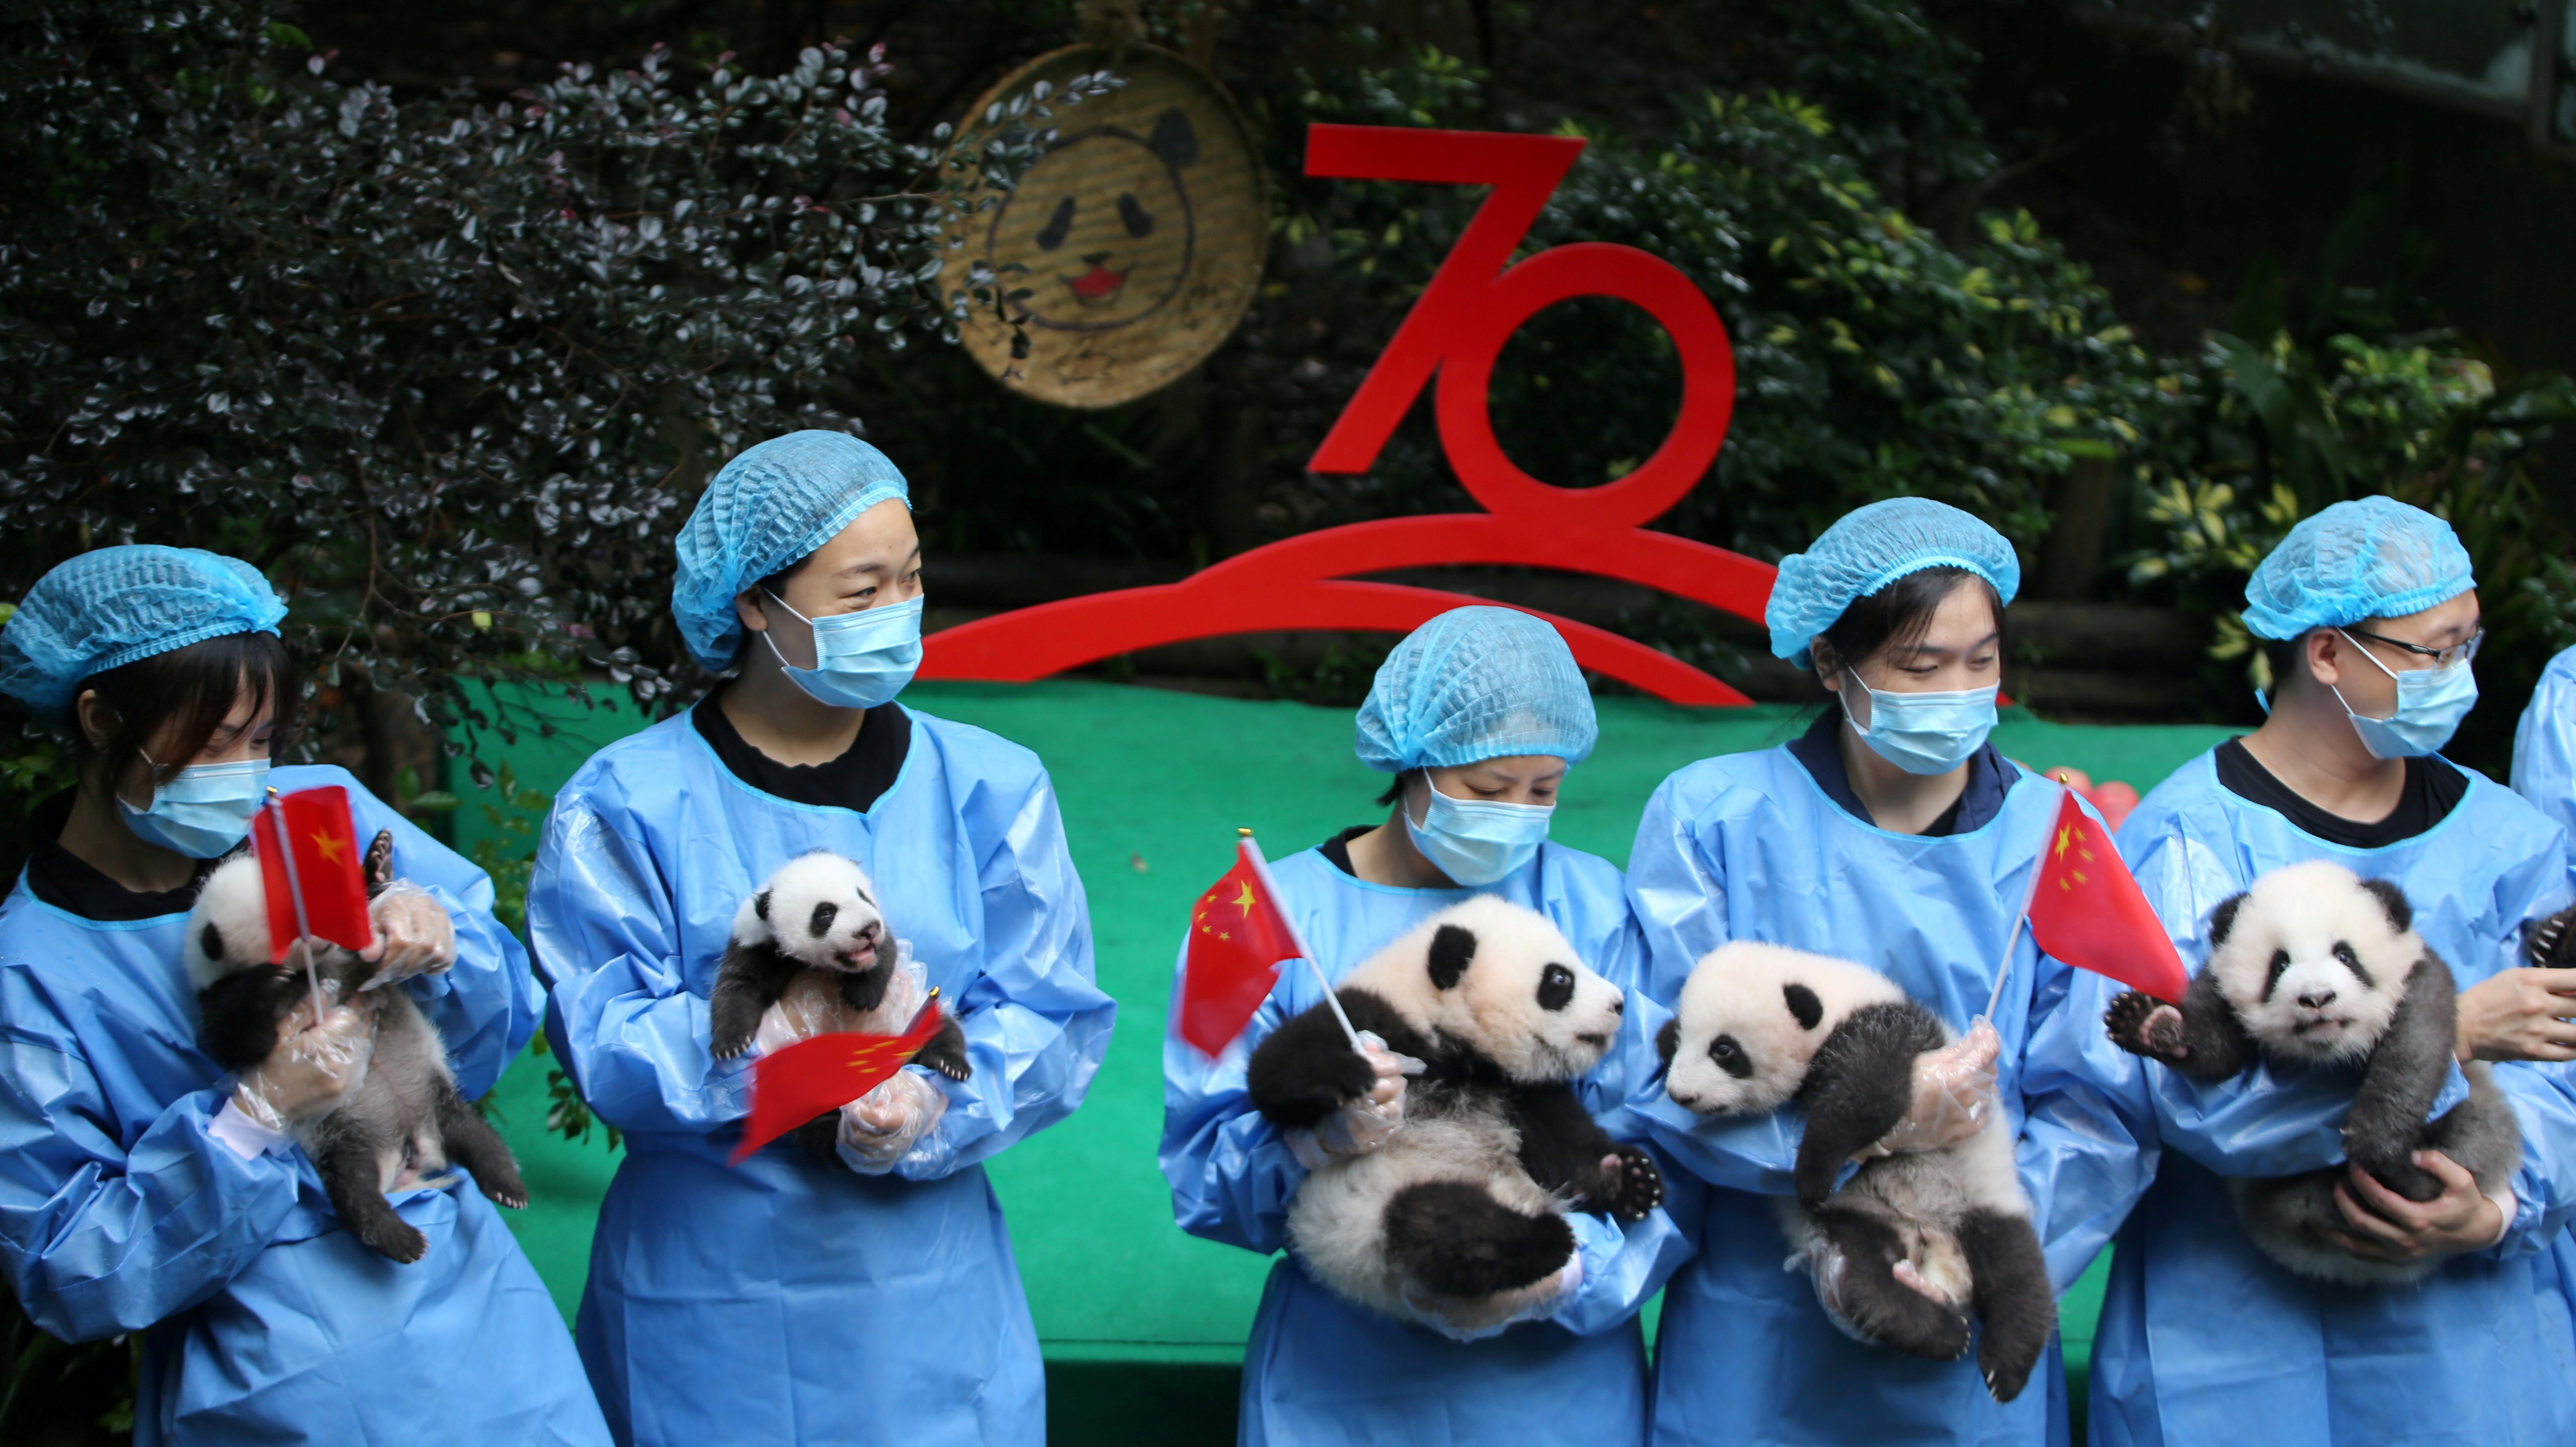 Breeders hold Chinese flags and panda cubs born in 2019 as they pose for pictures during an event marking the upcoming 70th anniversary of the founding of the People's Republic of China at Chengdu Research Base of Giant Panda Breeding in Chengdu, Sichuan province, China September 24, 2019.